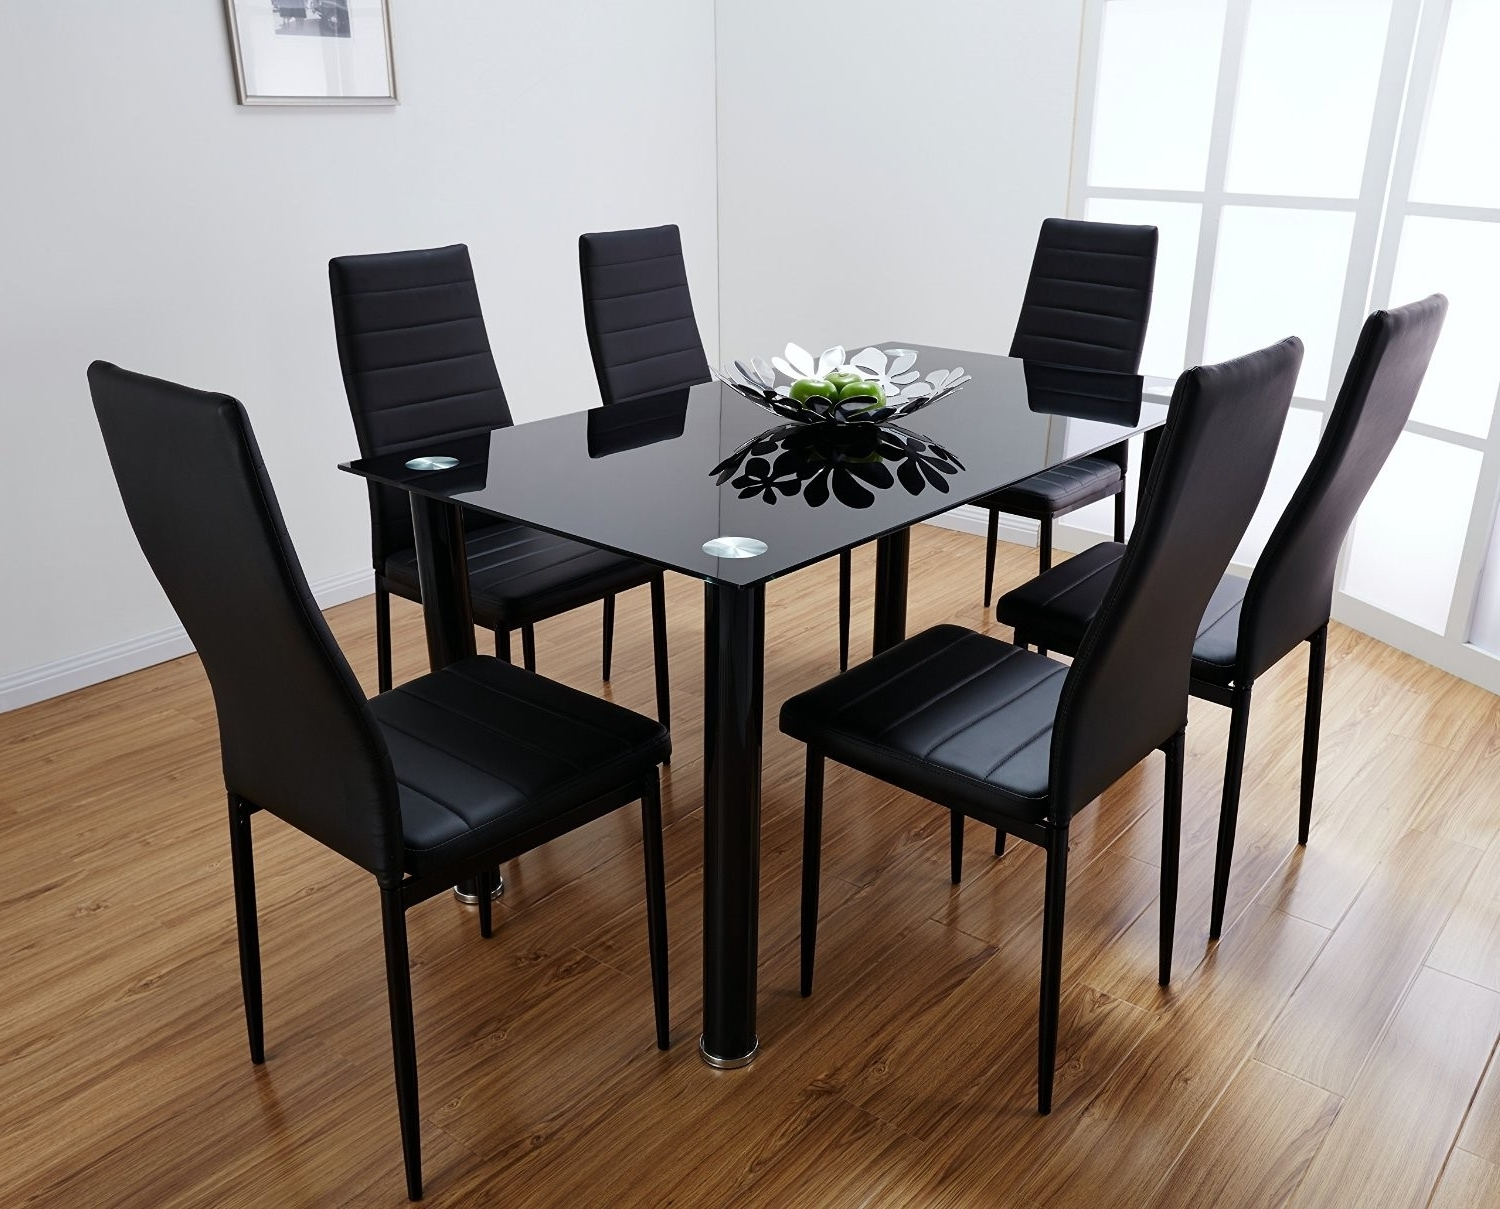 Black Glass Dining Table Decorating Ideas With 4 Chairs – Home Decor Regarding Popular Black Glass Dining Tables (Gallery 6 of 25)